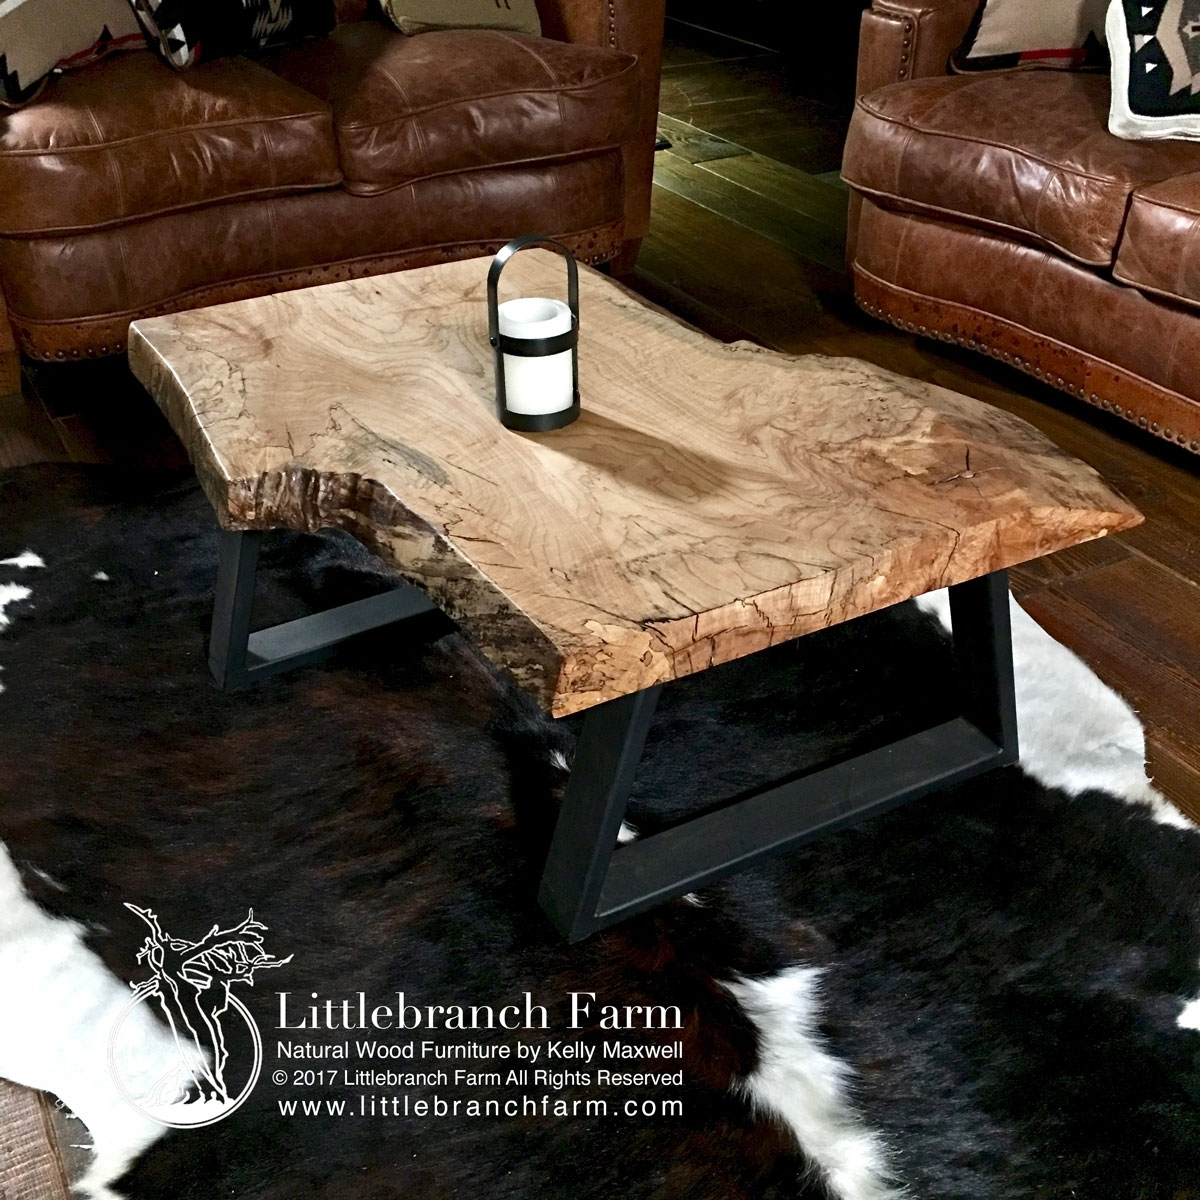 Natural Wood Coffee Tables - Rustic Coffee Table | Littlebranch Farm throughout Mill Large Coffee Tables (Image 18 of 30)